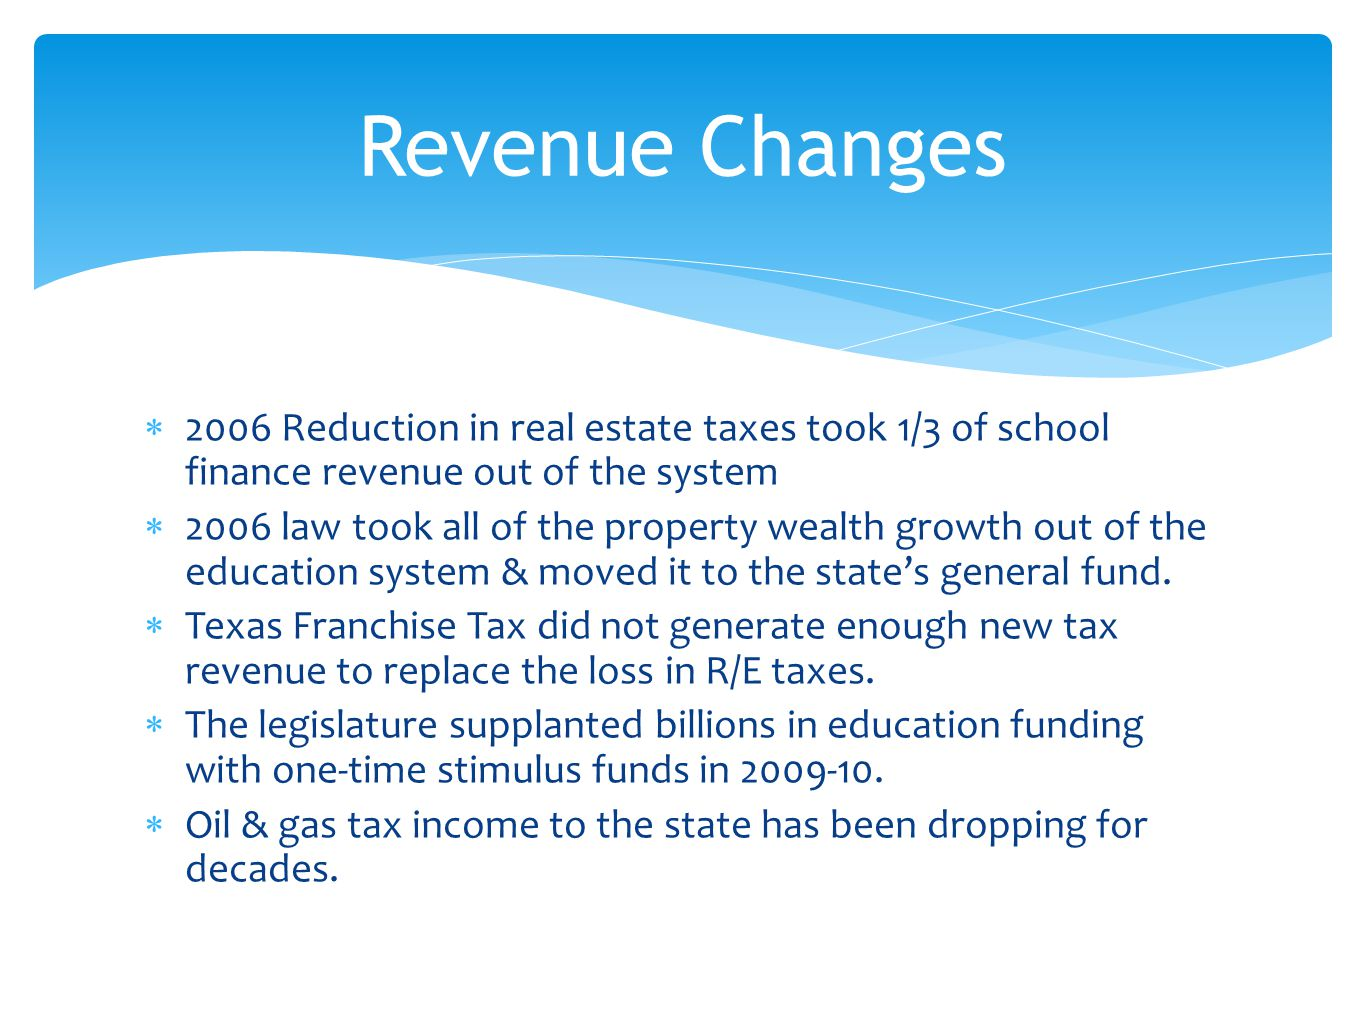  2006 Reduction in real estate taxes took 1/3 of school finance revenue out of the system  2006 law took all of the property wealth growth out of th